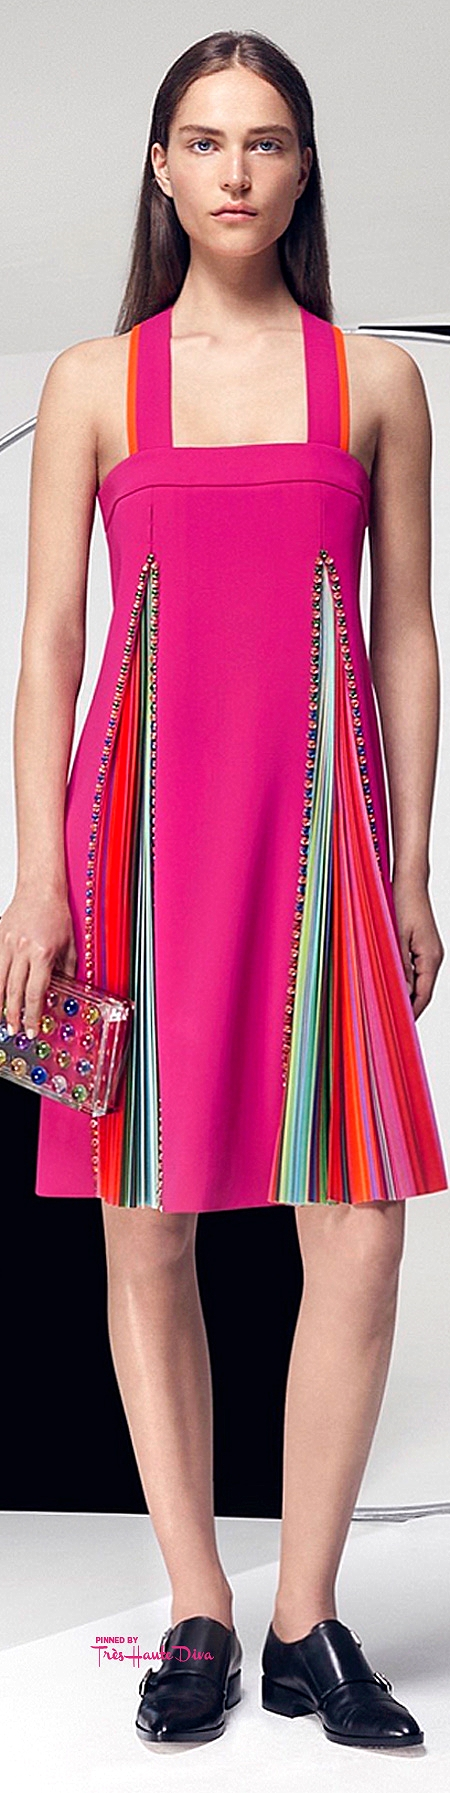 Mary Katrantzou Resort 2016